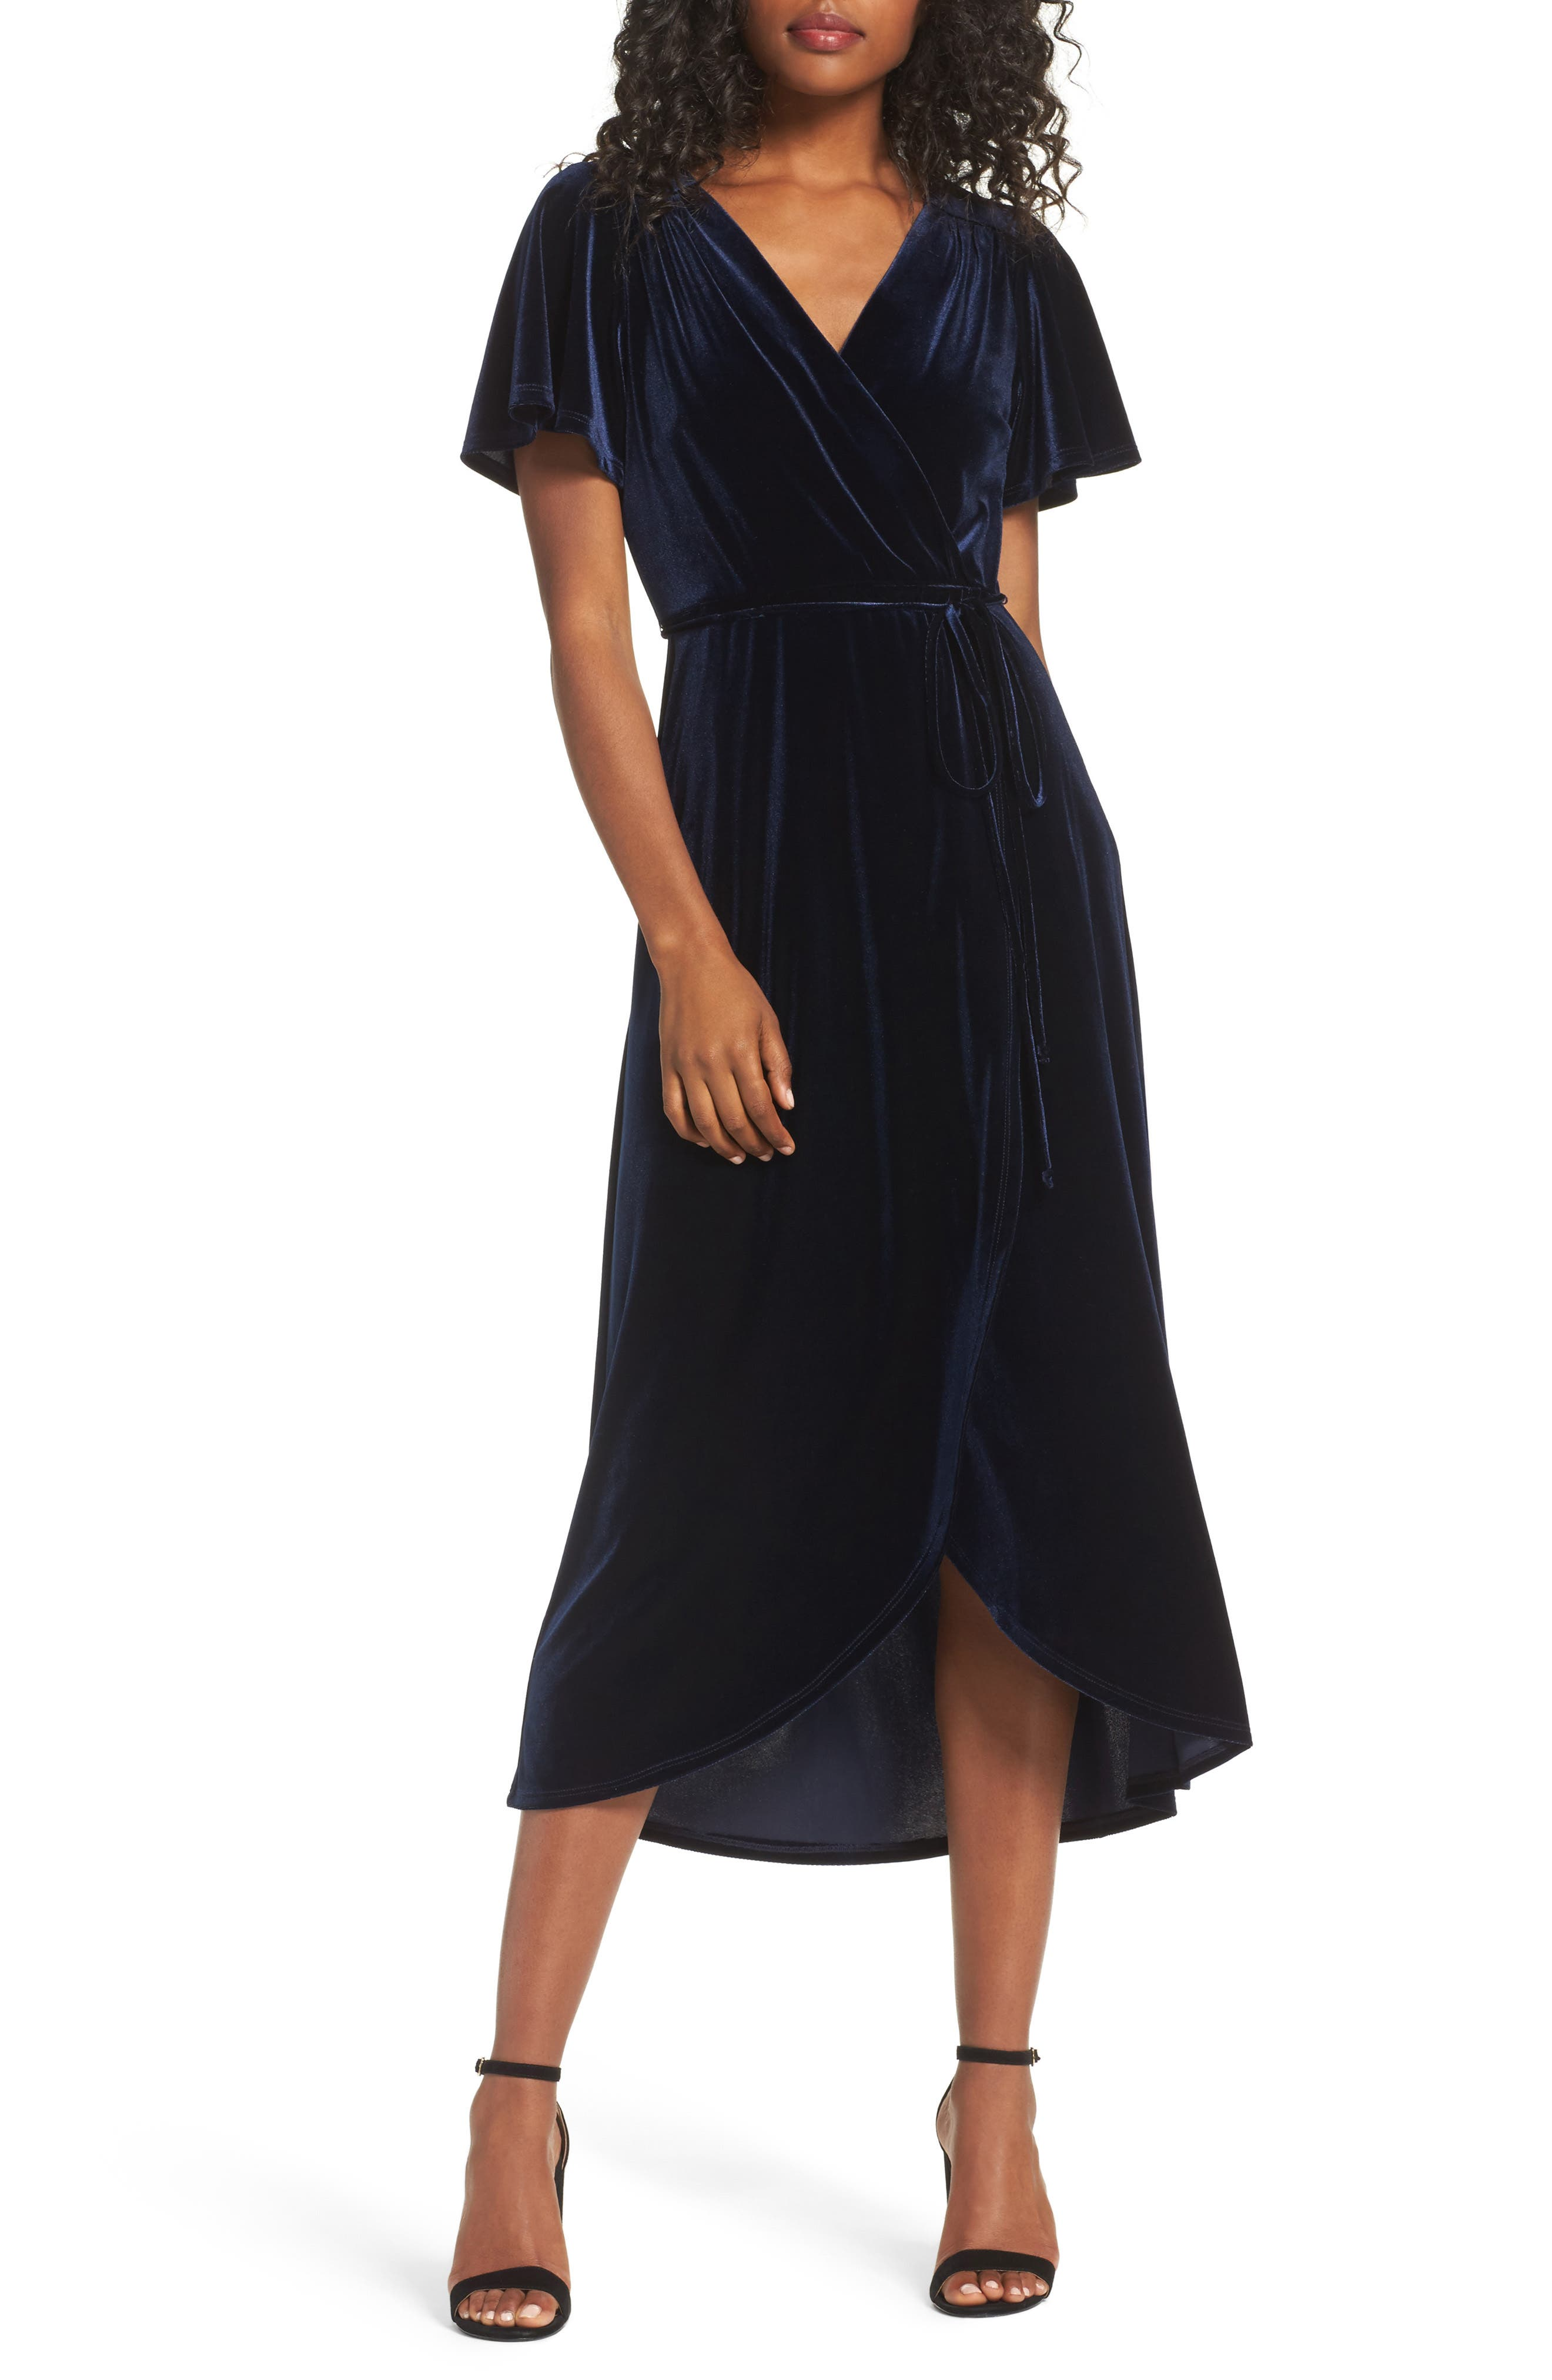 70s Prom, Formal, Evening, Party Dresses Womens Chelsea28 Velvet Faux Wrap Midi Dress Size Large - Blue $77.40 AT vintagedancer.com